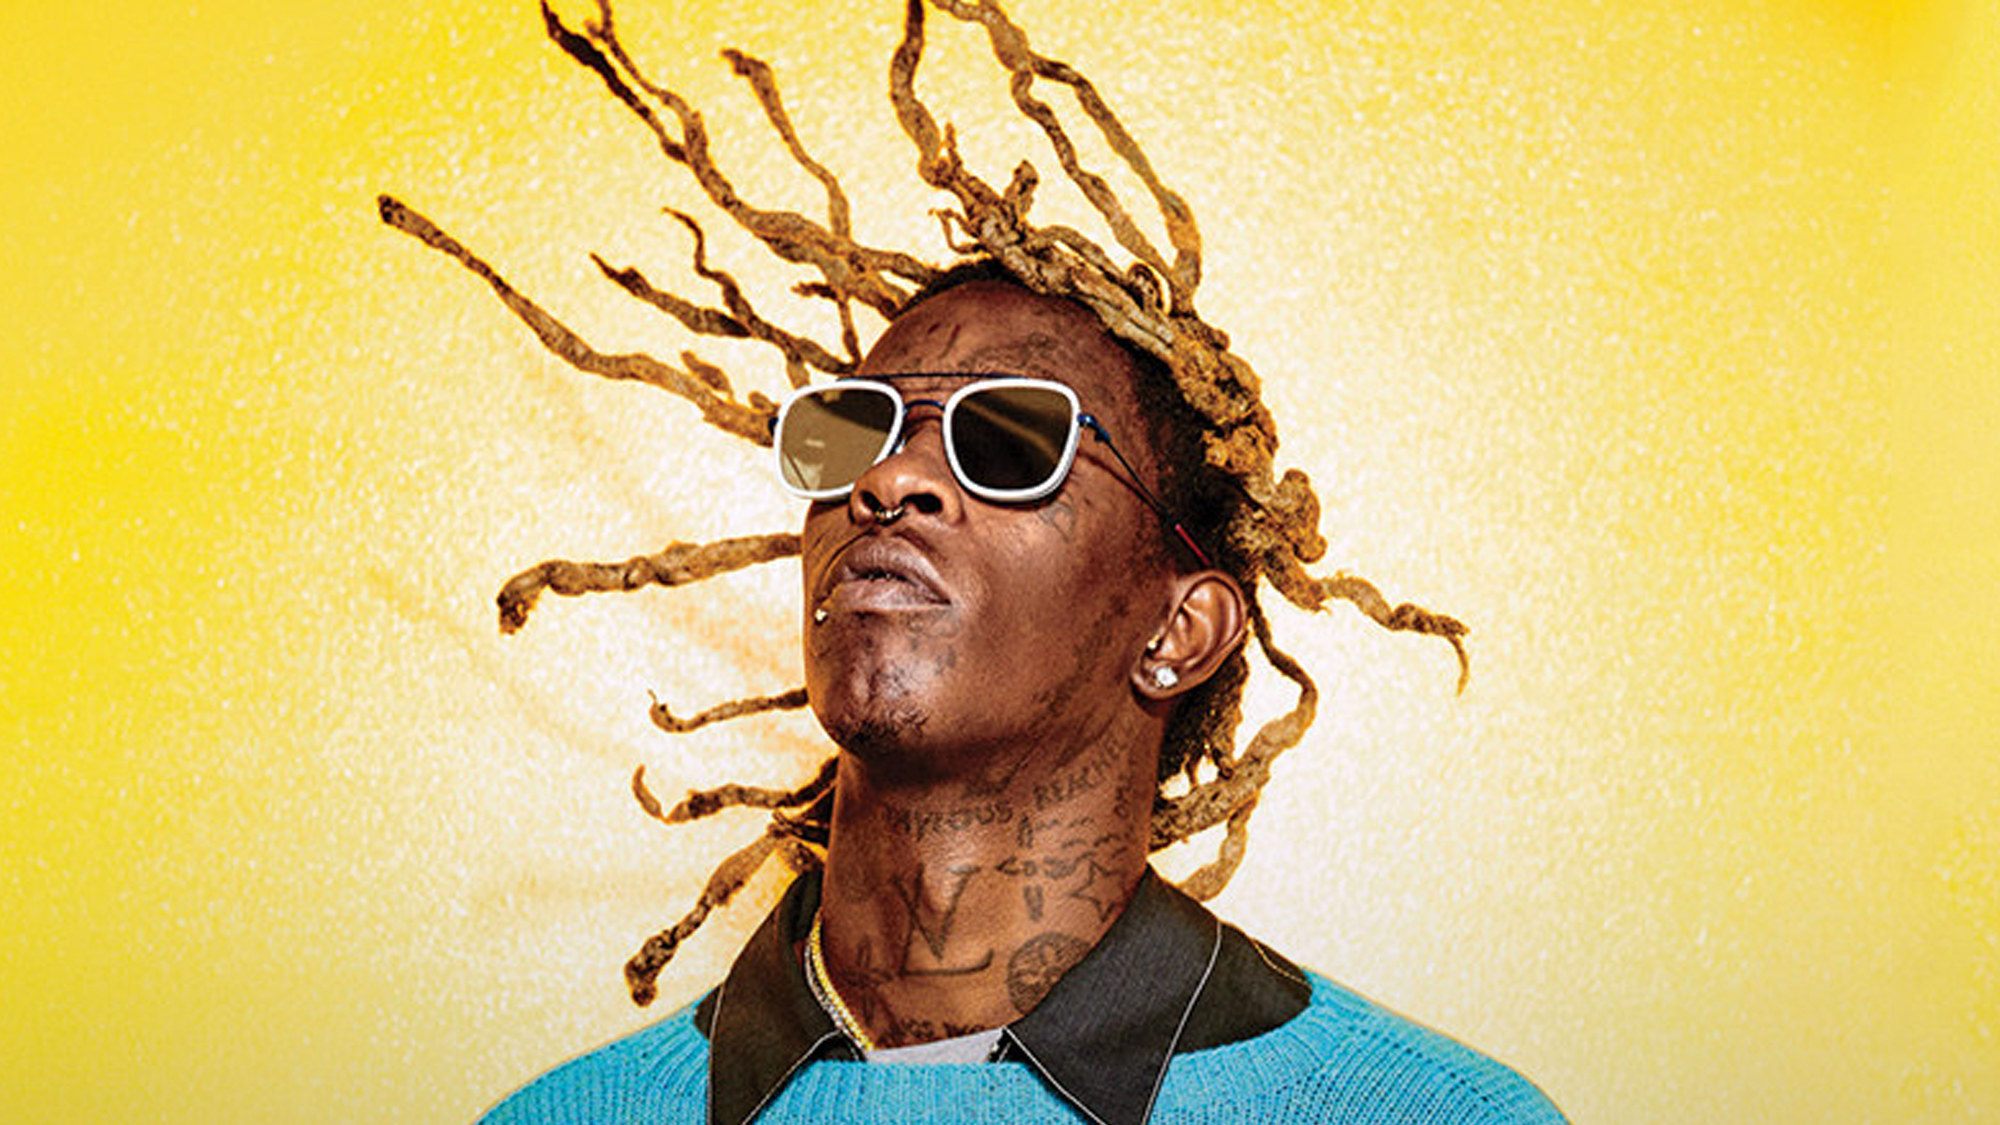 Young Thug Wallpapers Images Photos Pictures Backgrounds 2000x1125